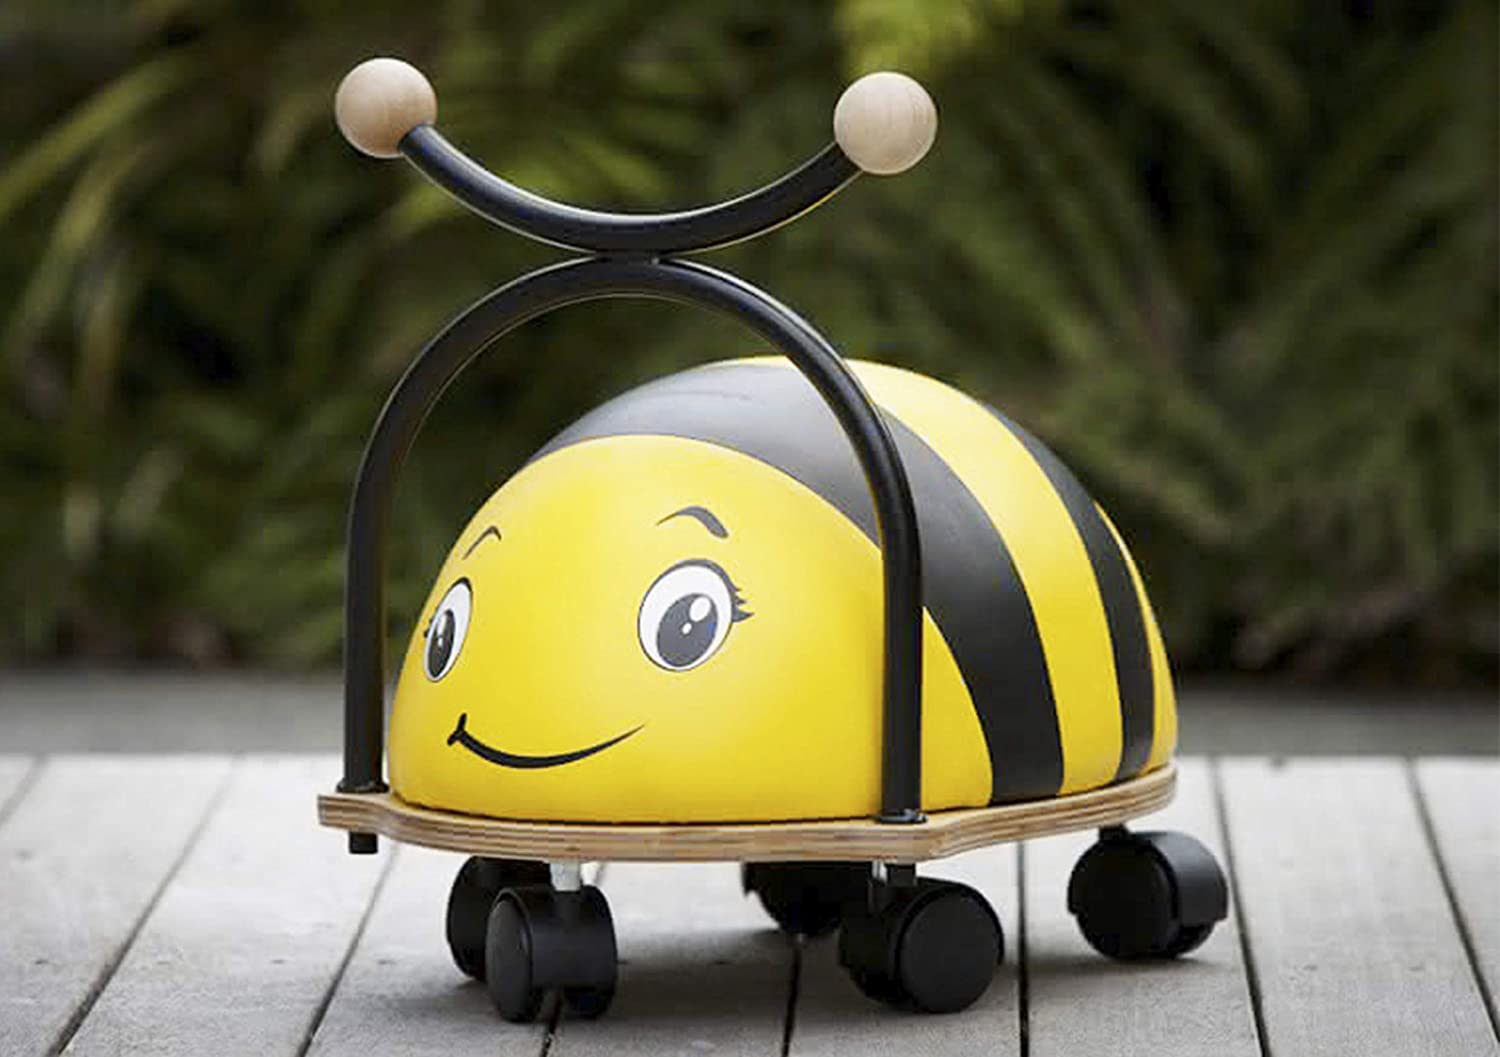 Bumblebee Balance Bug Ride On Bee Toy Wooden Base With Foam And Wipe Clean Cover Wheely Toy By Beehive Toys Amazon Co Uk Toys Games